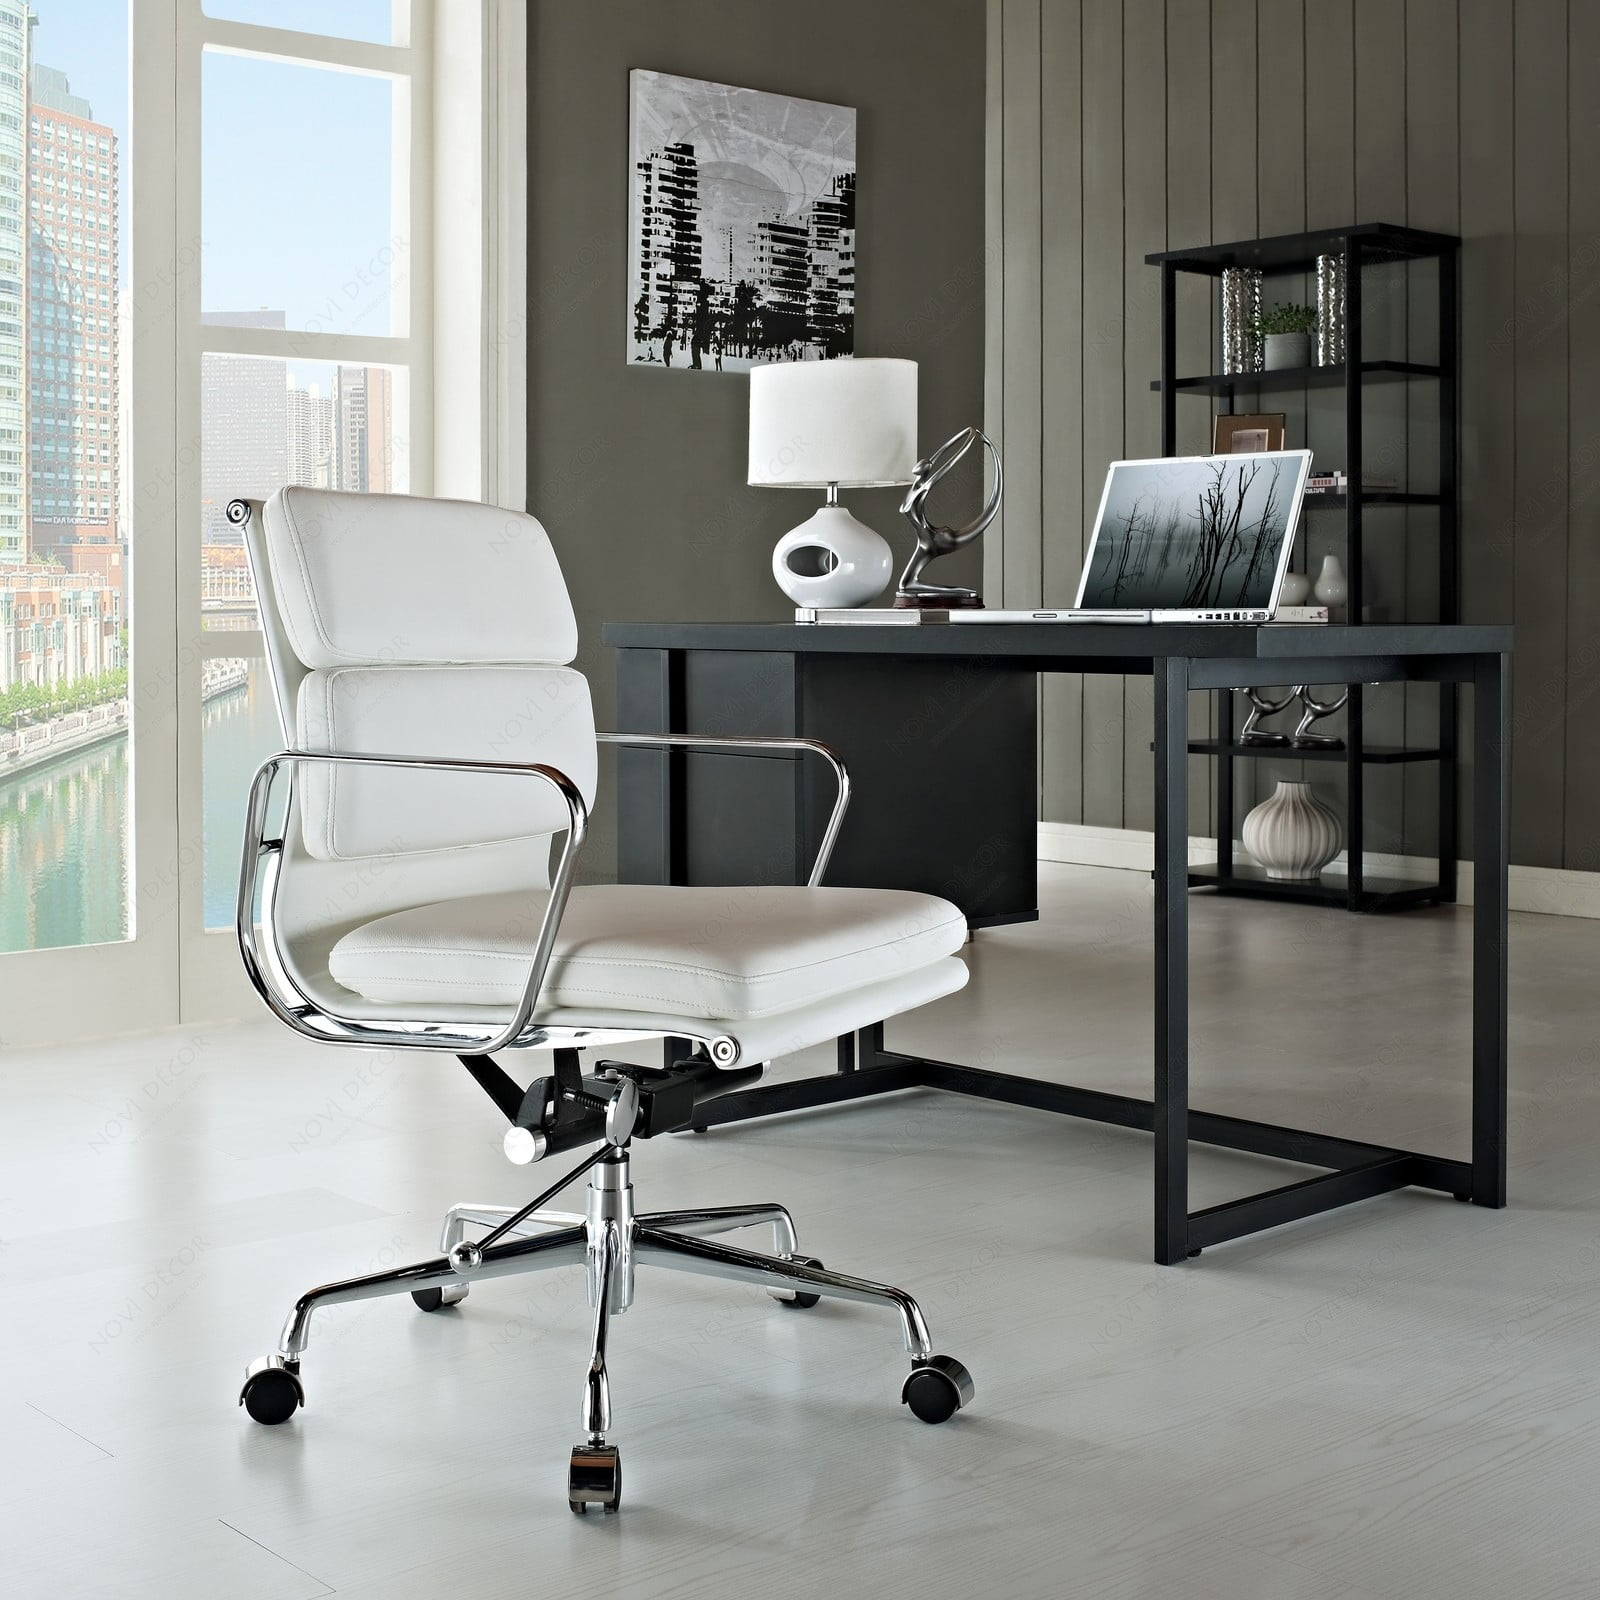 office elm australia west helvetica media chairs leather chair